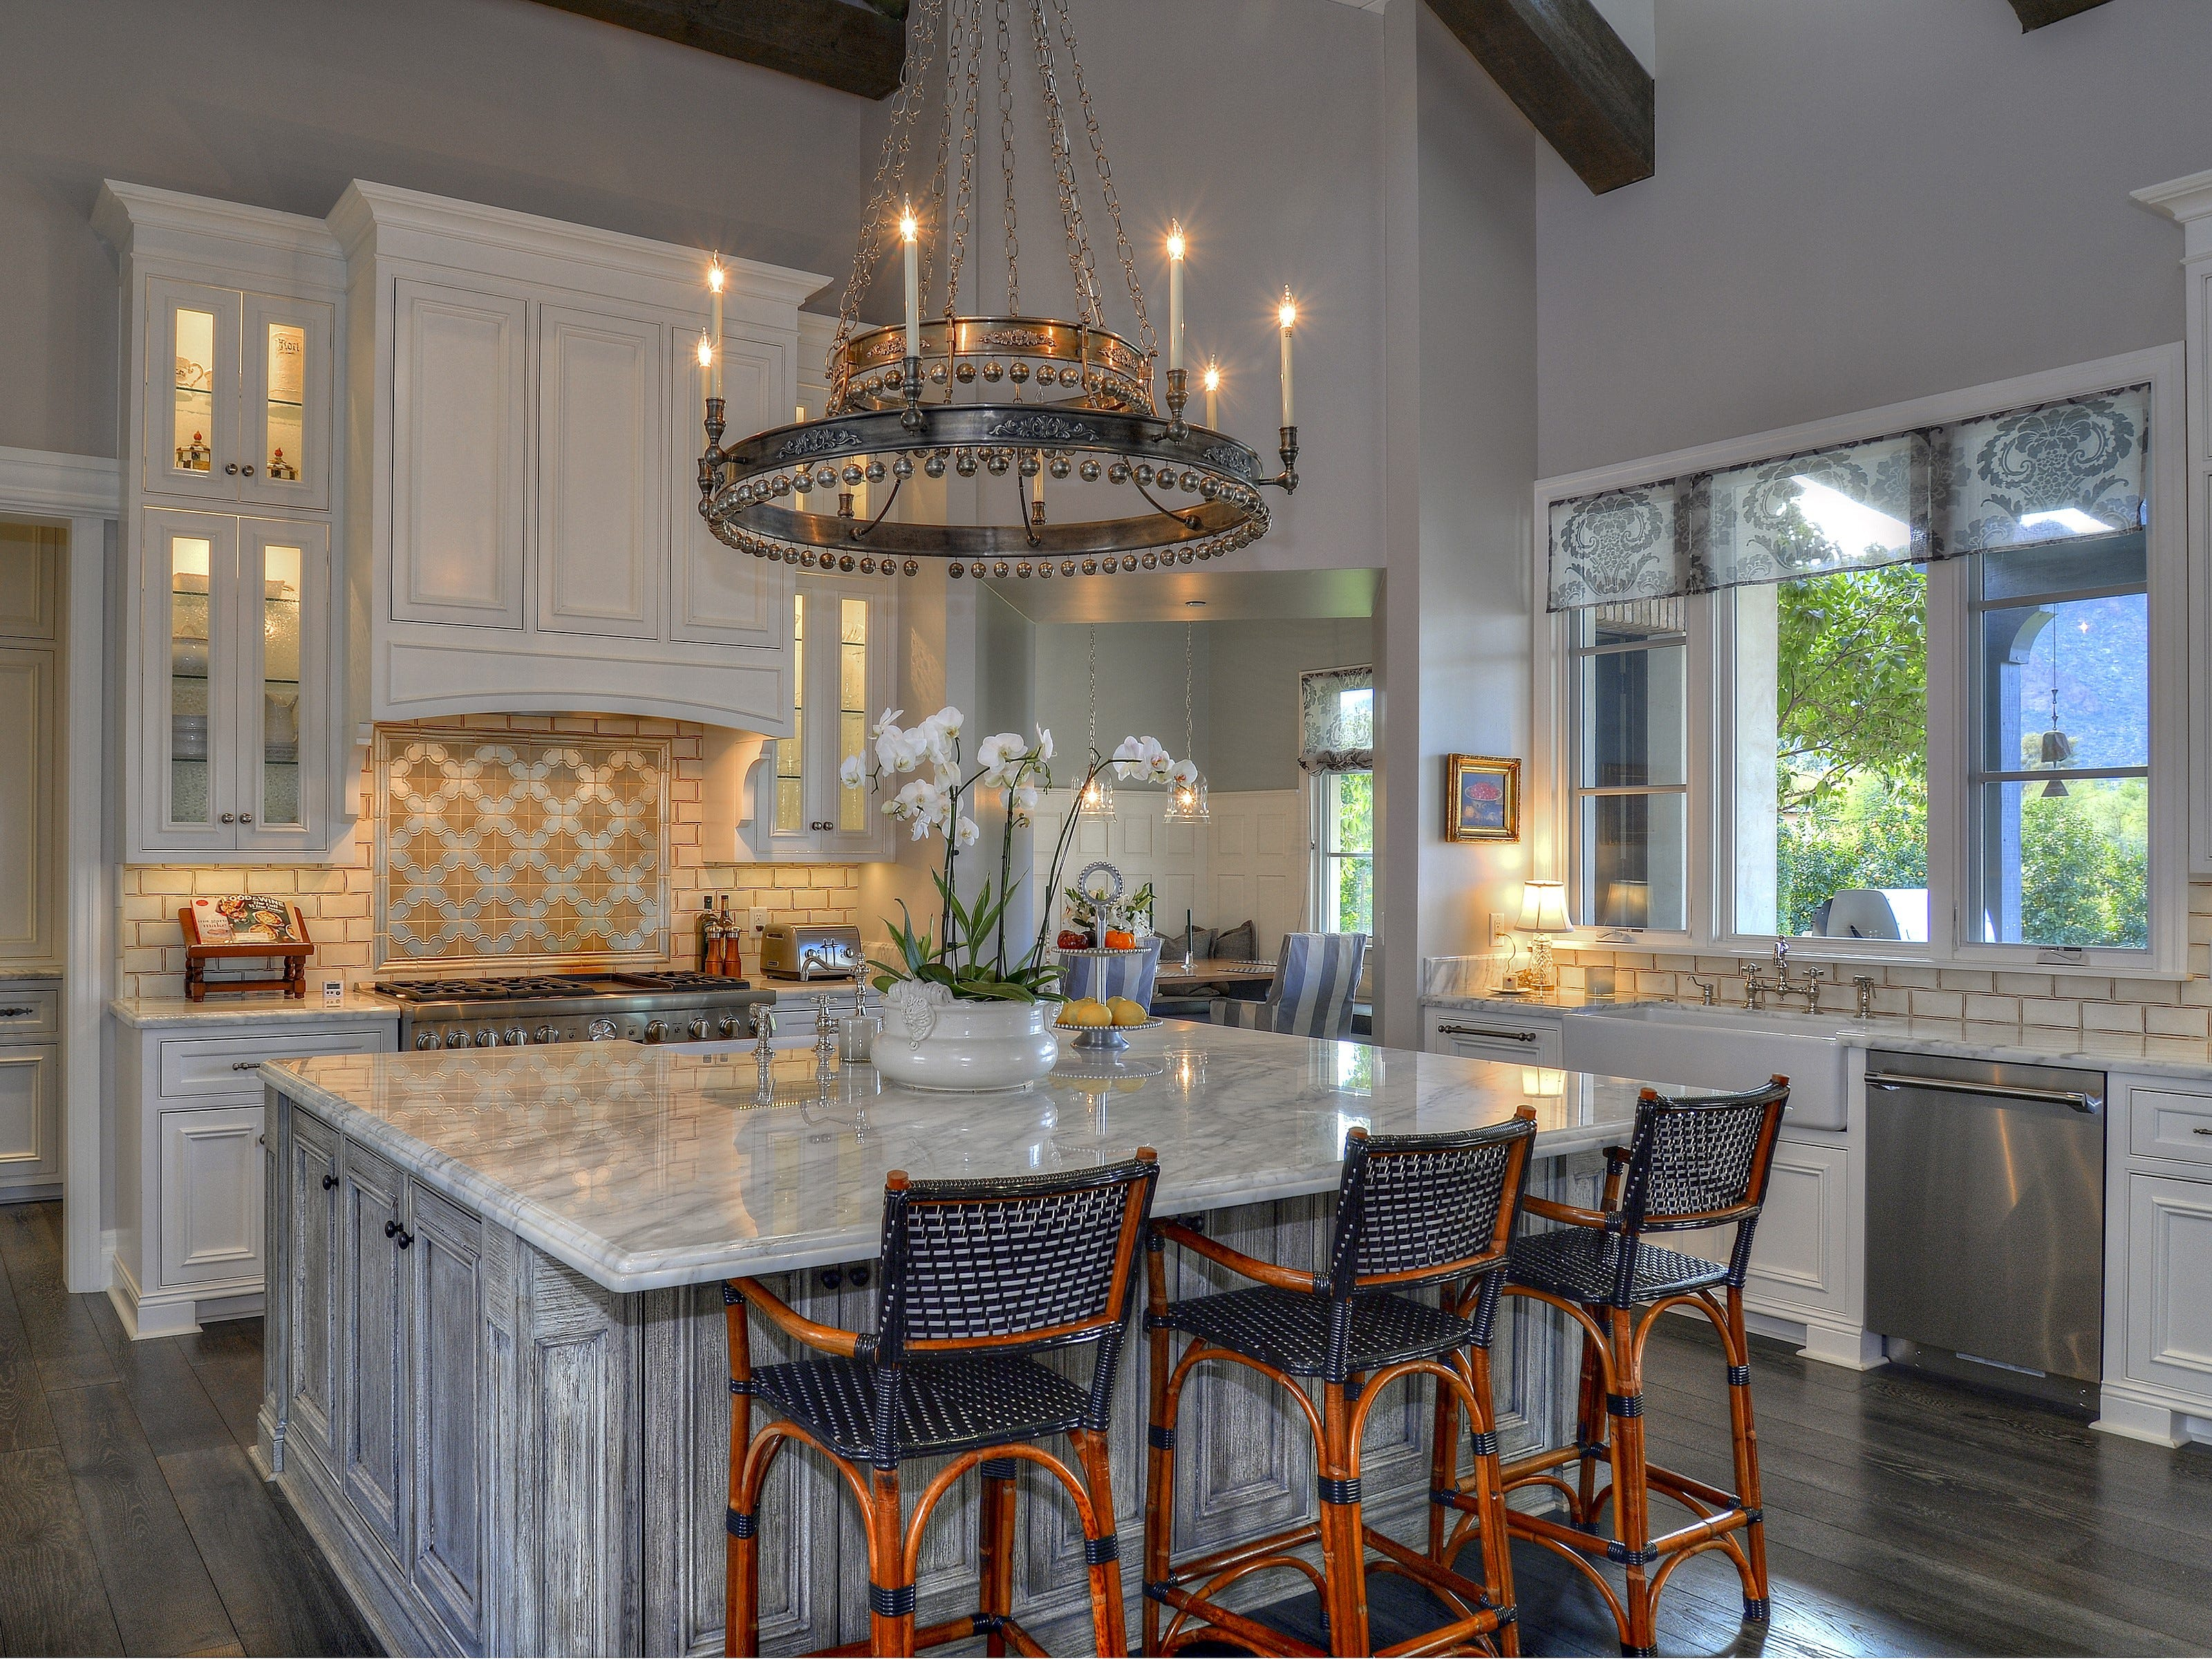 The Paradise Valley mansion, sold by Scott and Victoria Curtis, has a chef's kitchen that includes custom cabinetry and a large center island.